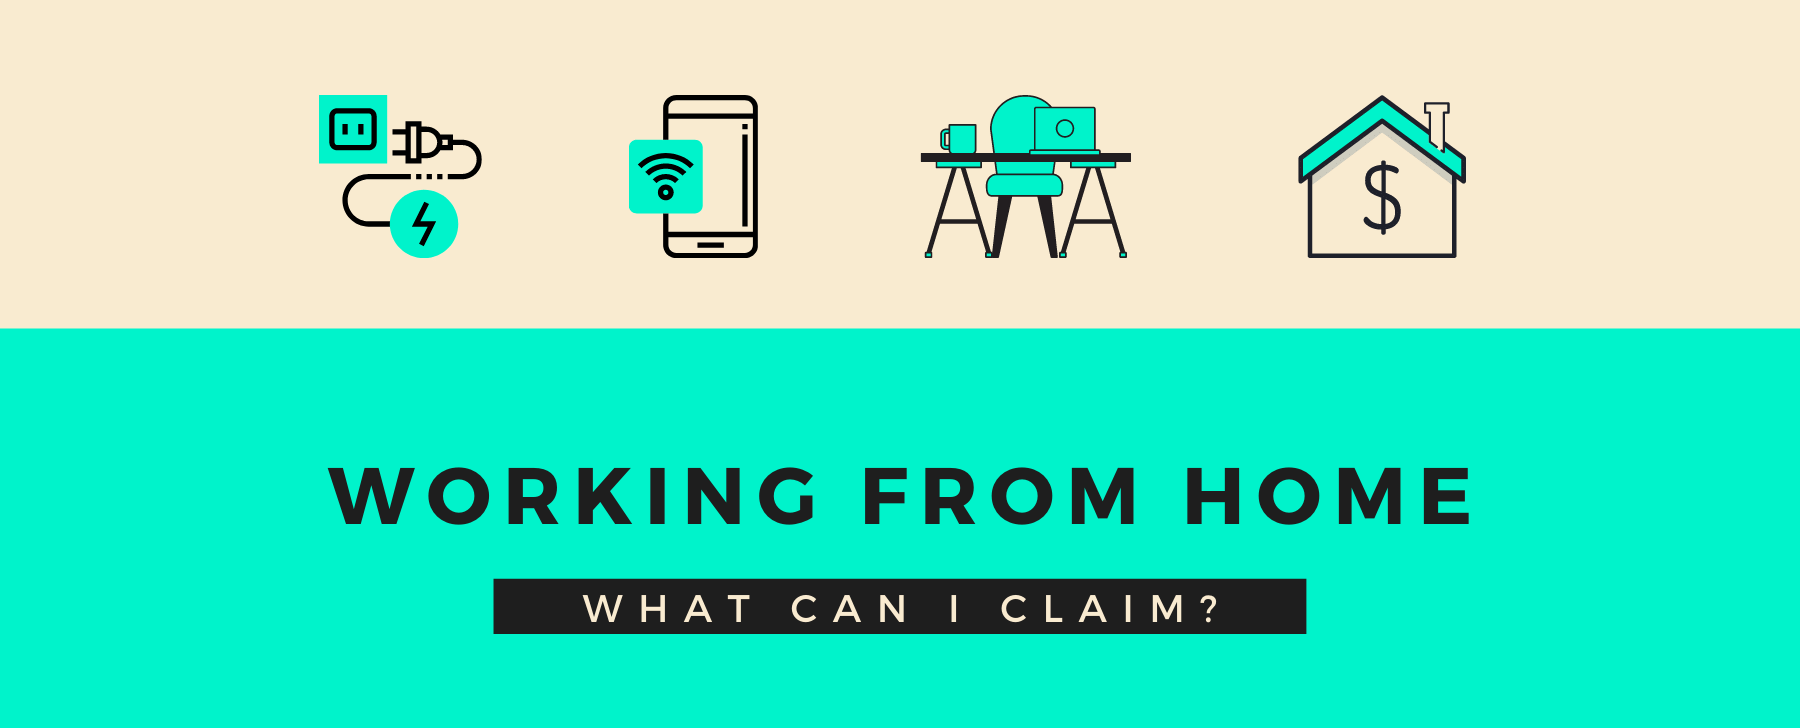 working from home deductions and icons of things you can claim for deductions